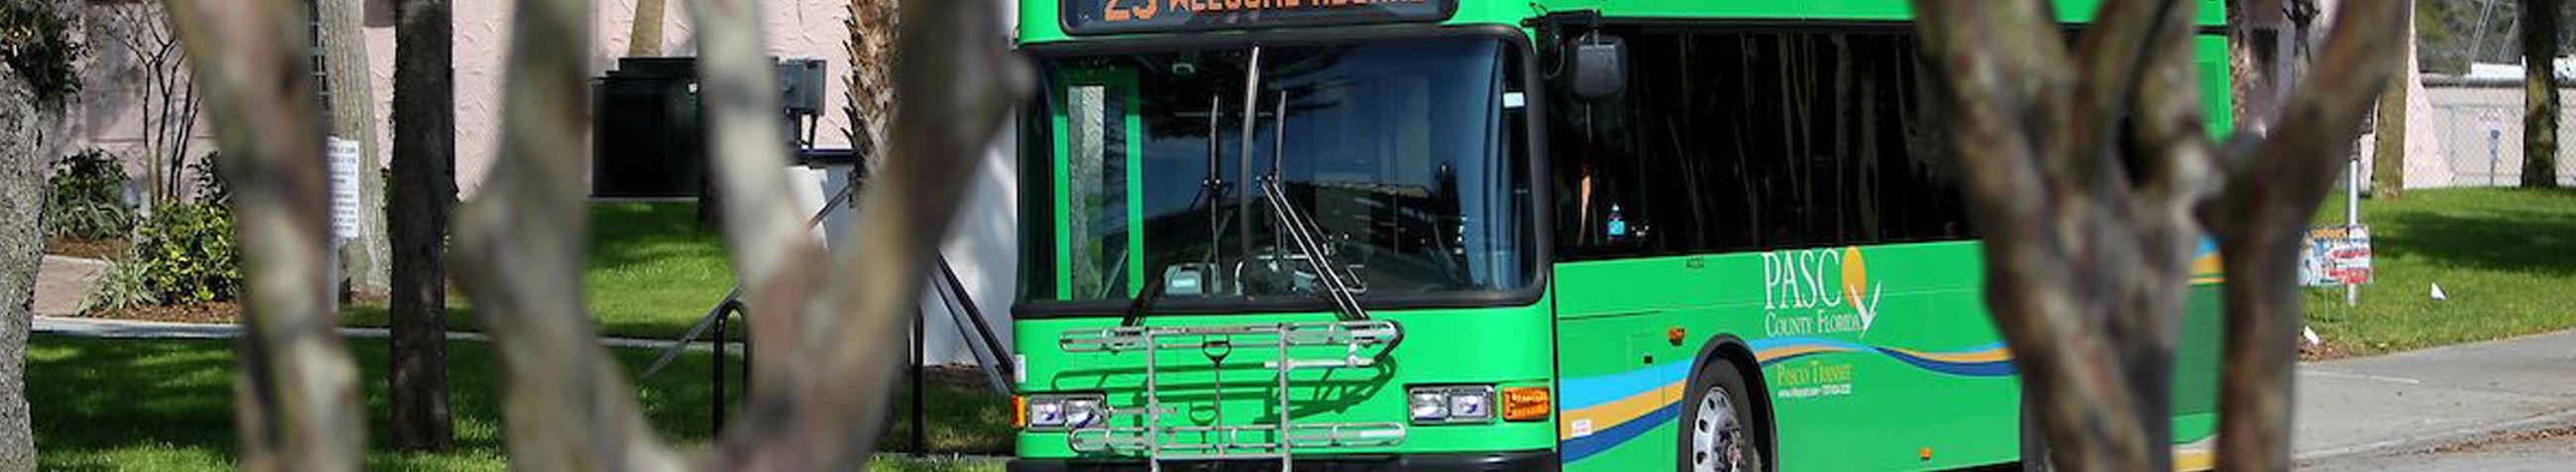 Fixed Routes Schedules Pasco County Fl Official Website